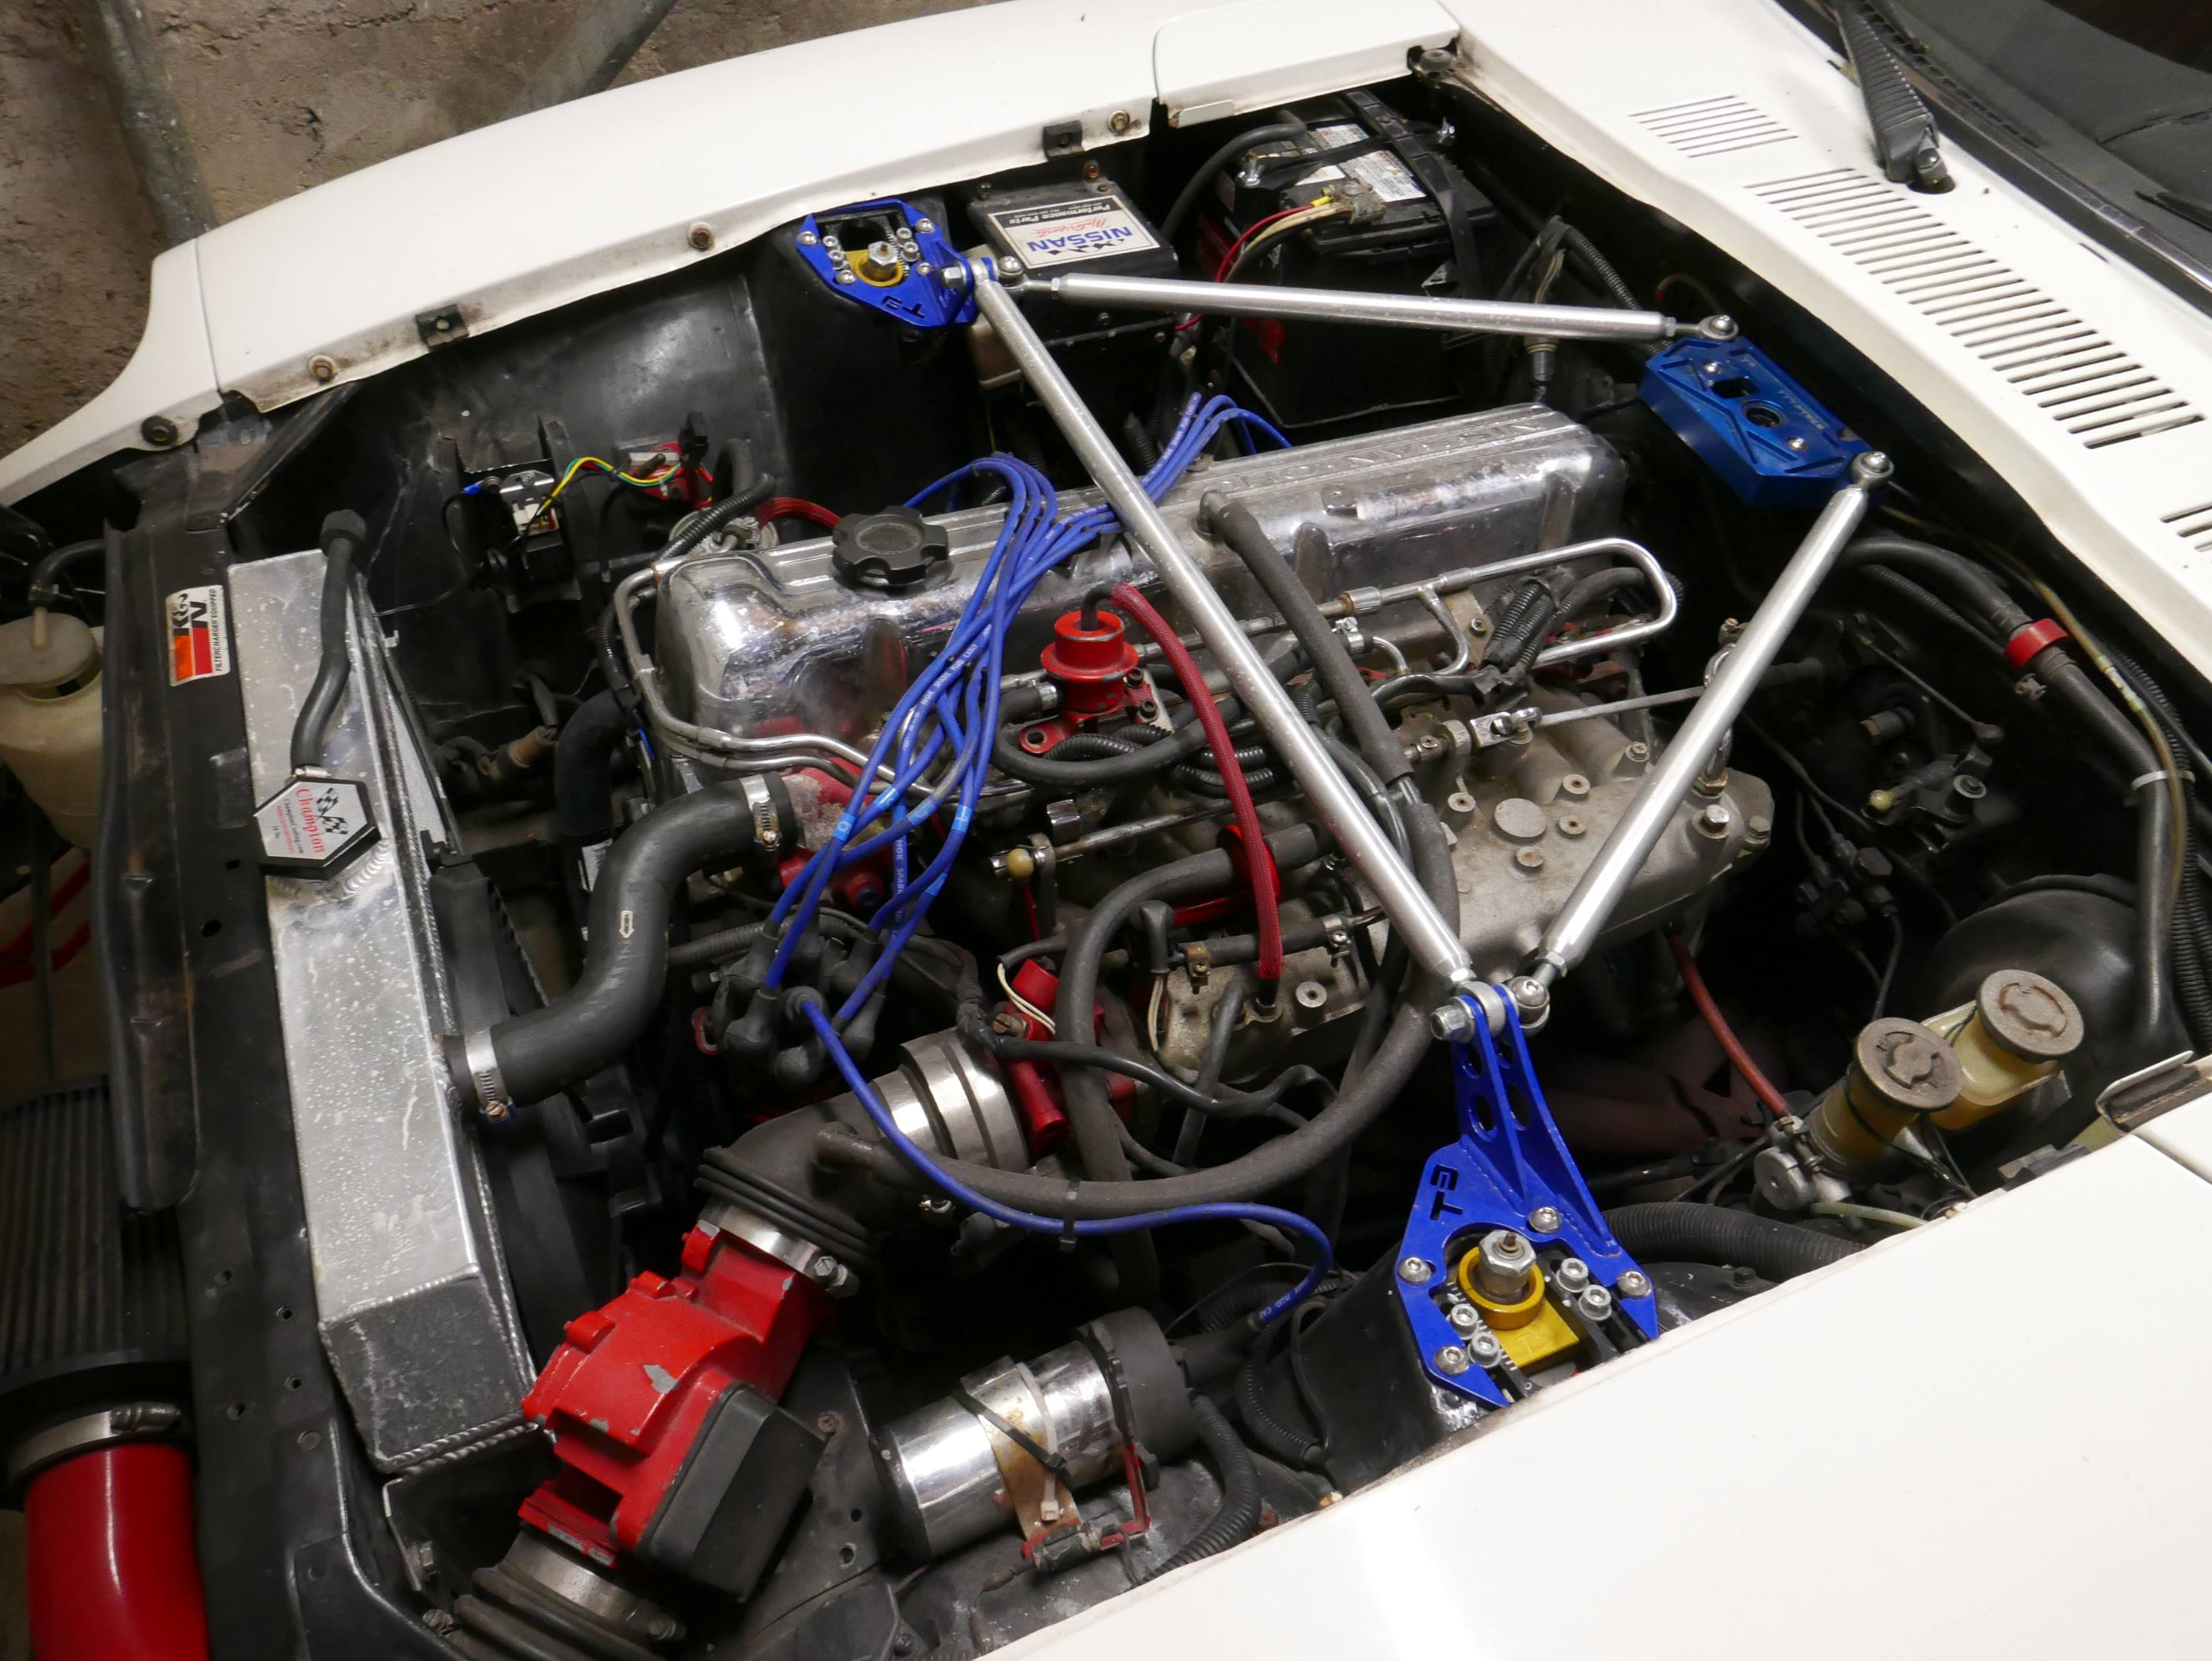 1978 Datsun 280Z engine